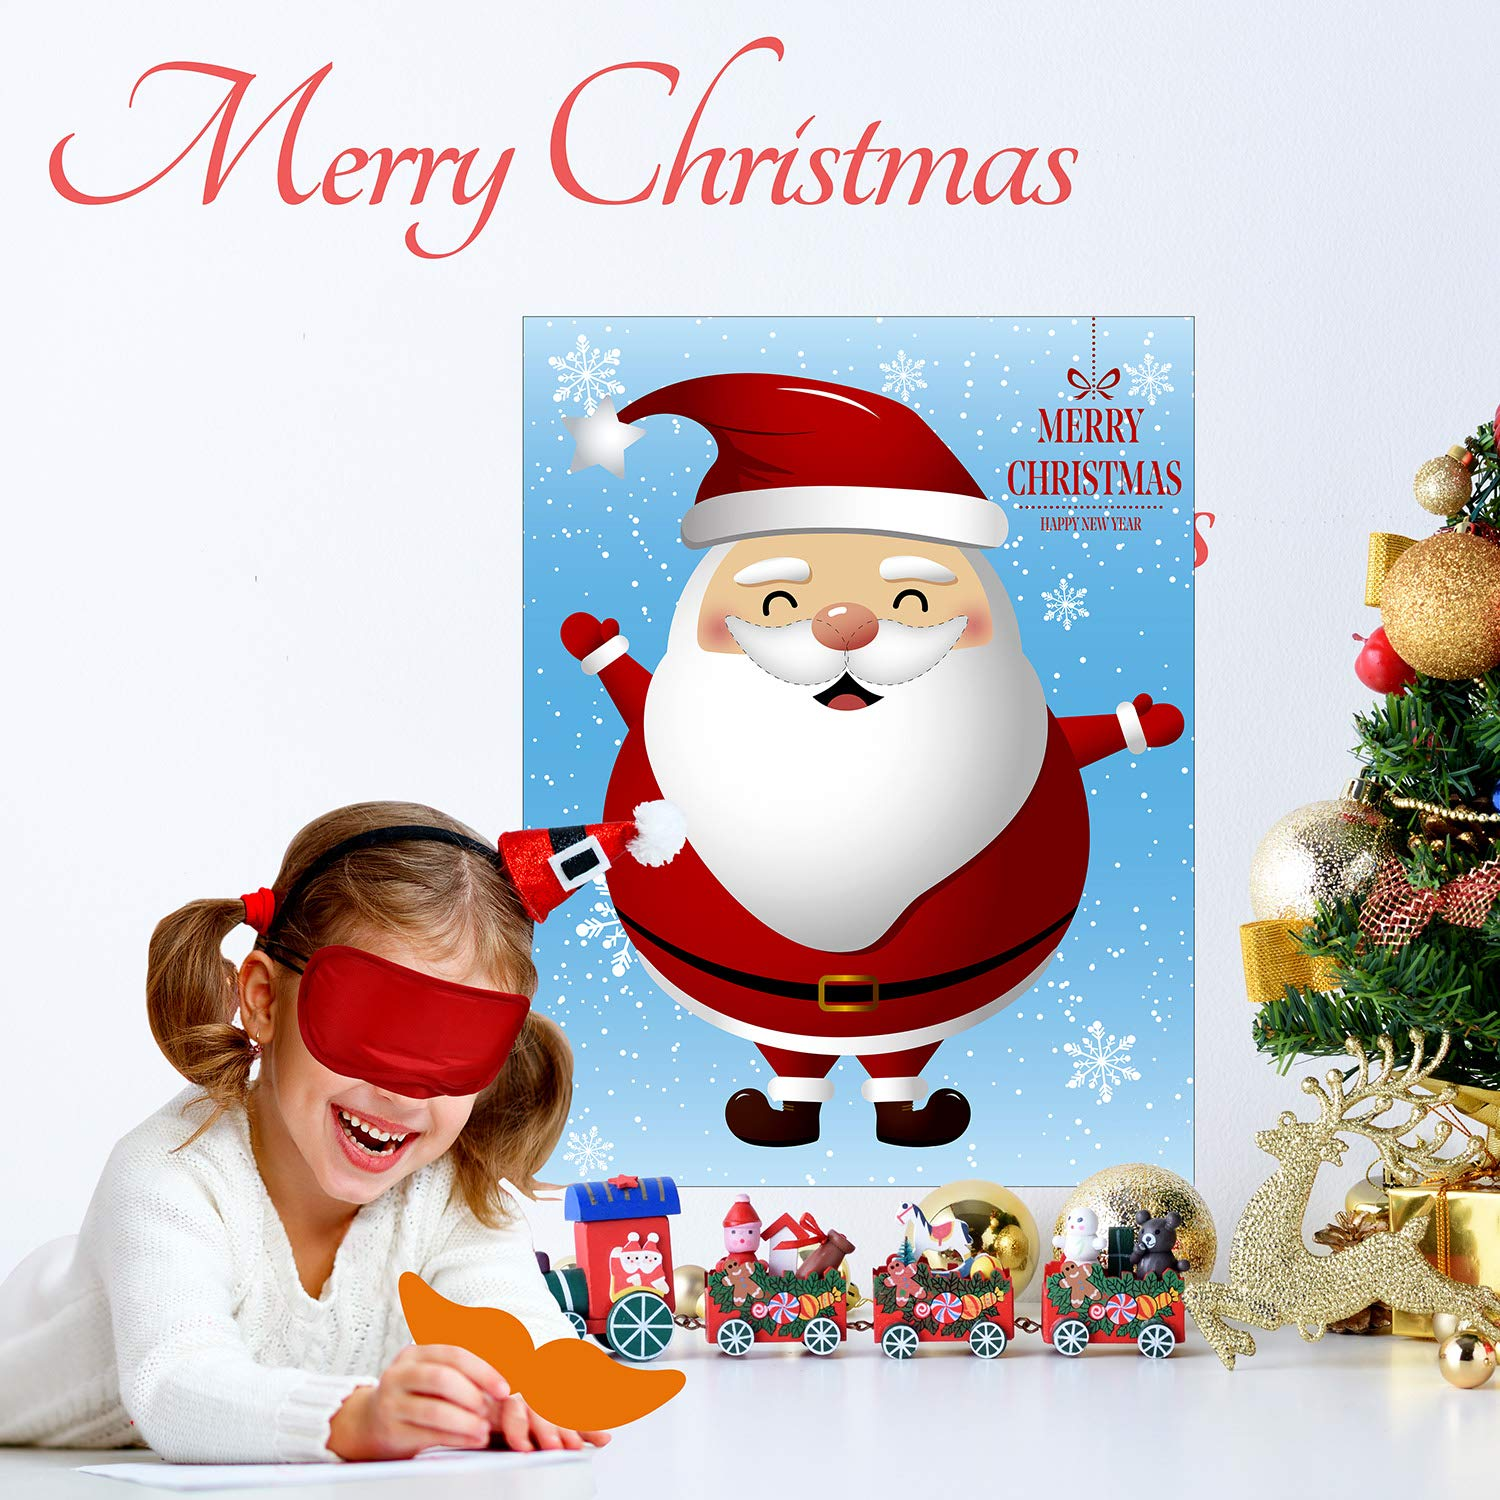 Christmas Party Pin Games Set Pin The Nose on The Snowman Pin The Beard on The Santa Claus Pin The Nose on The Reindeer for New Year Xmas Party Supplies(Reindeer)